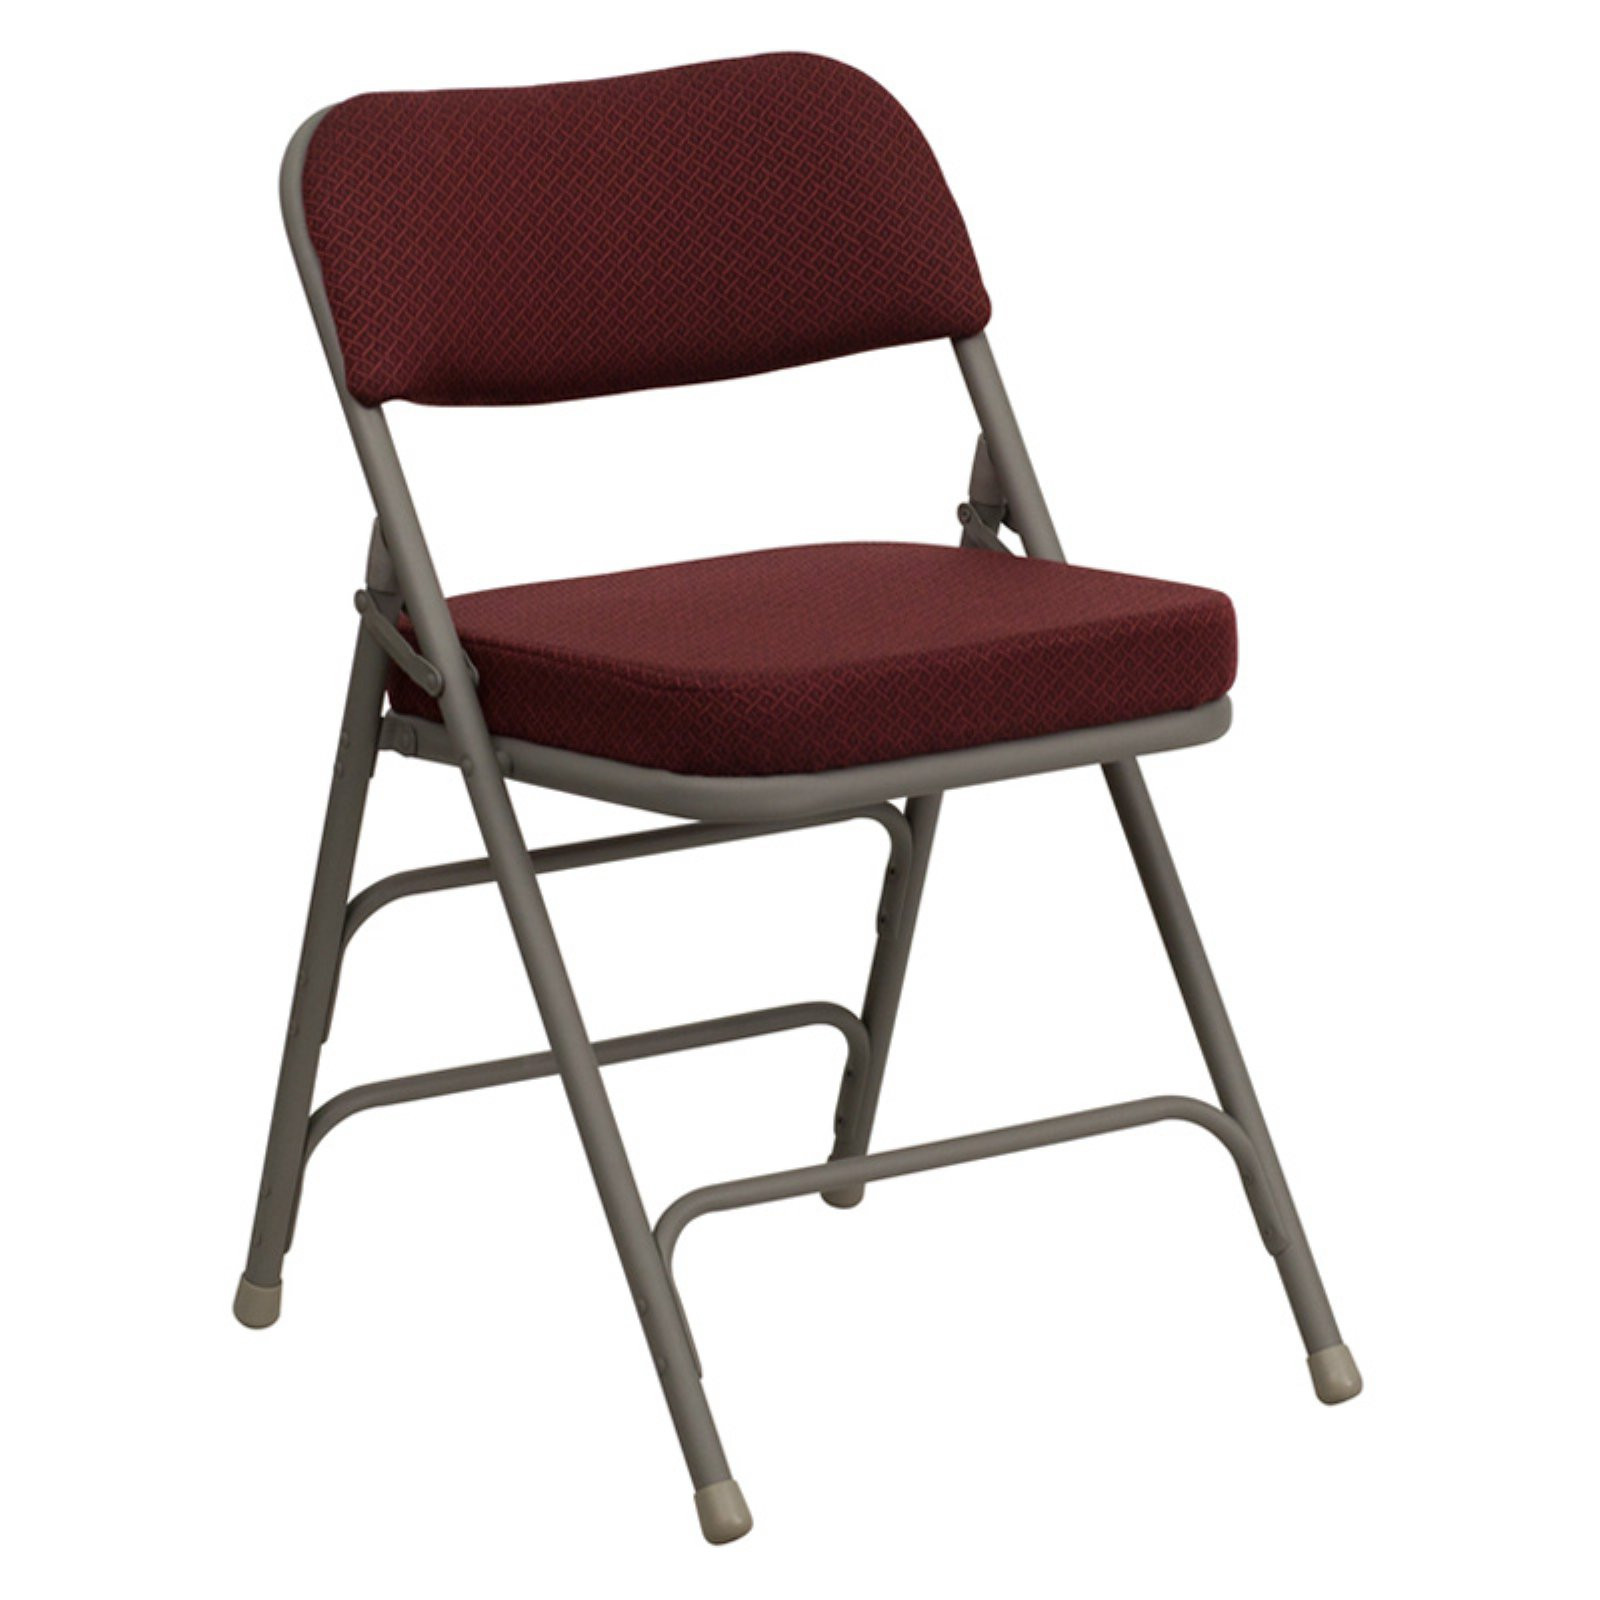 Wooden Folding Chairs wood folding chairs